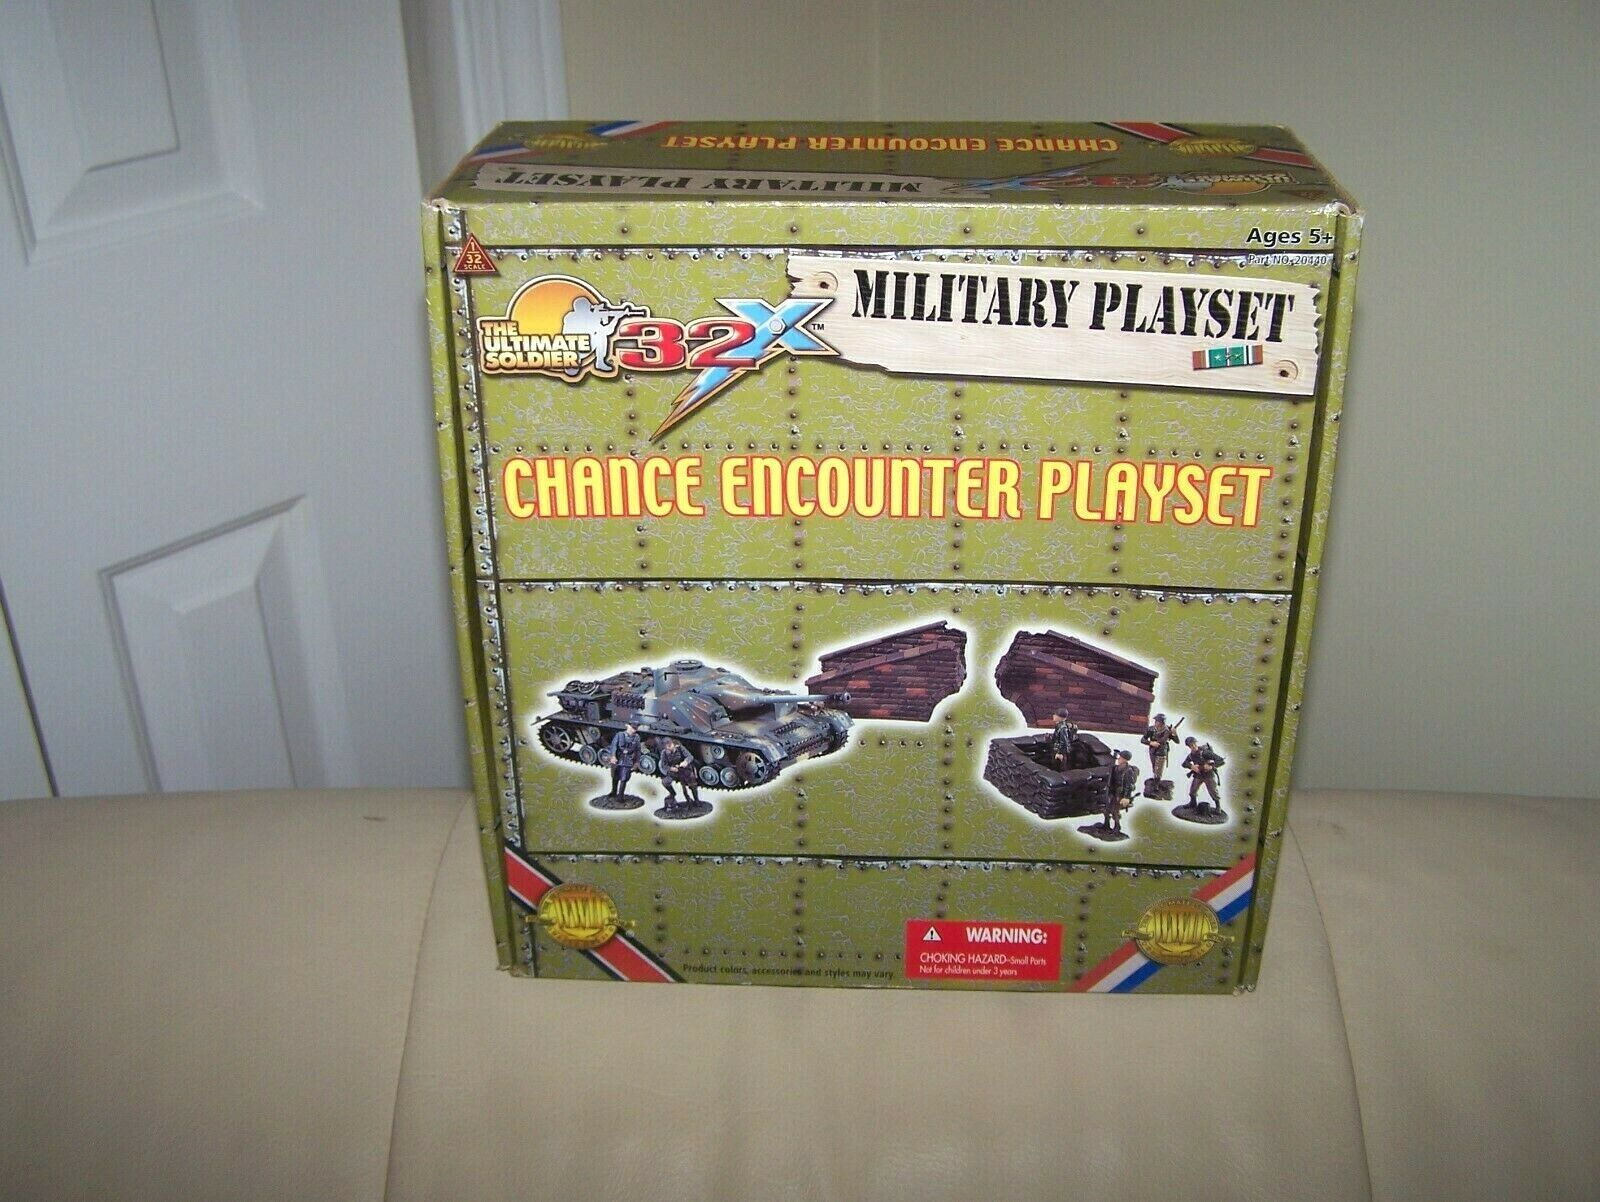 2004- ULTIMATE SOLDIER- CHANCE ENCOUNTER PLAYSET- FACTORY SEALED- MINT- 1 32